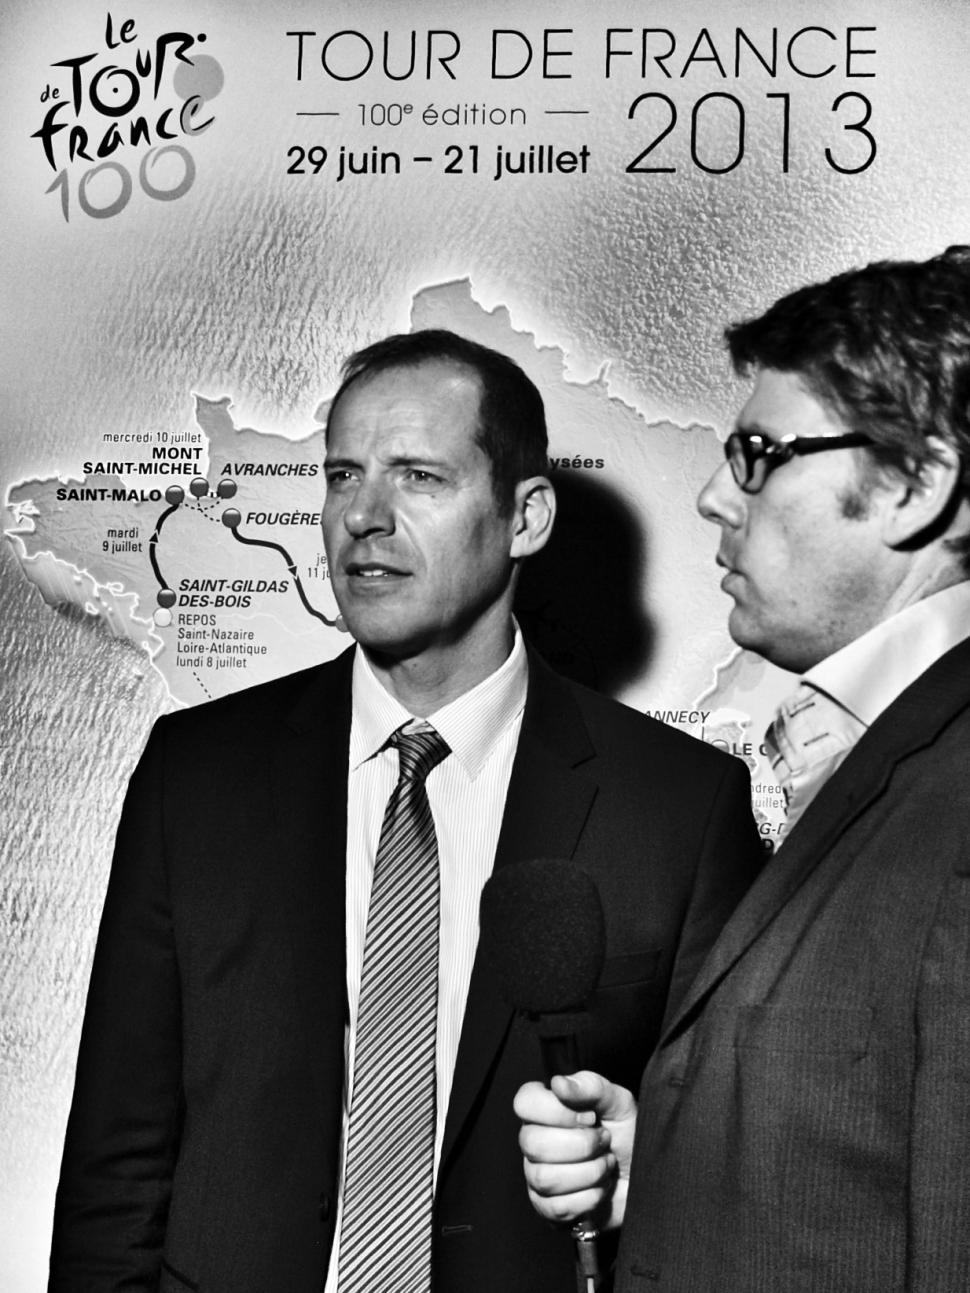 07 Christian Prudhomme at the TDF 2013 launch © Simon MacMichael